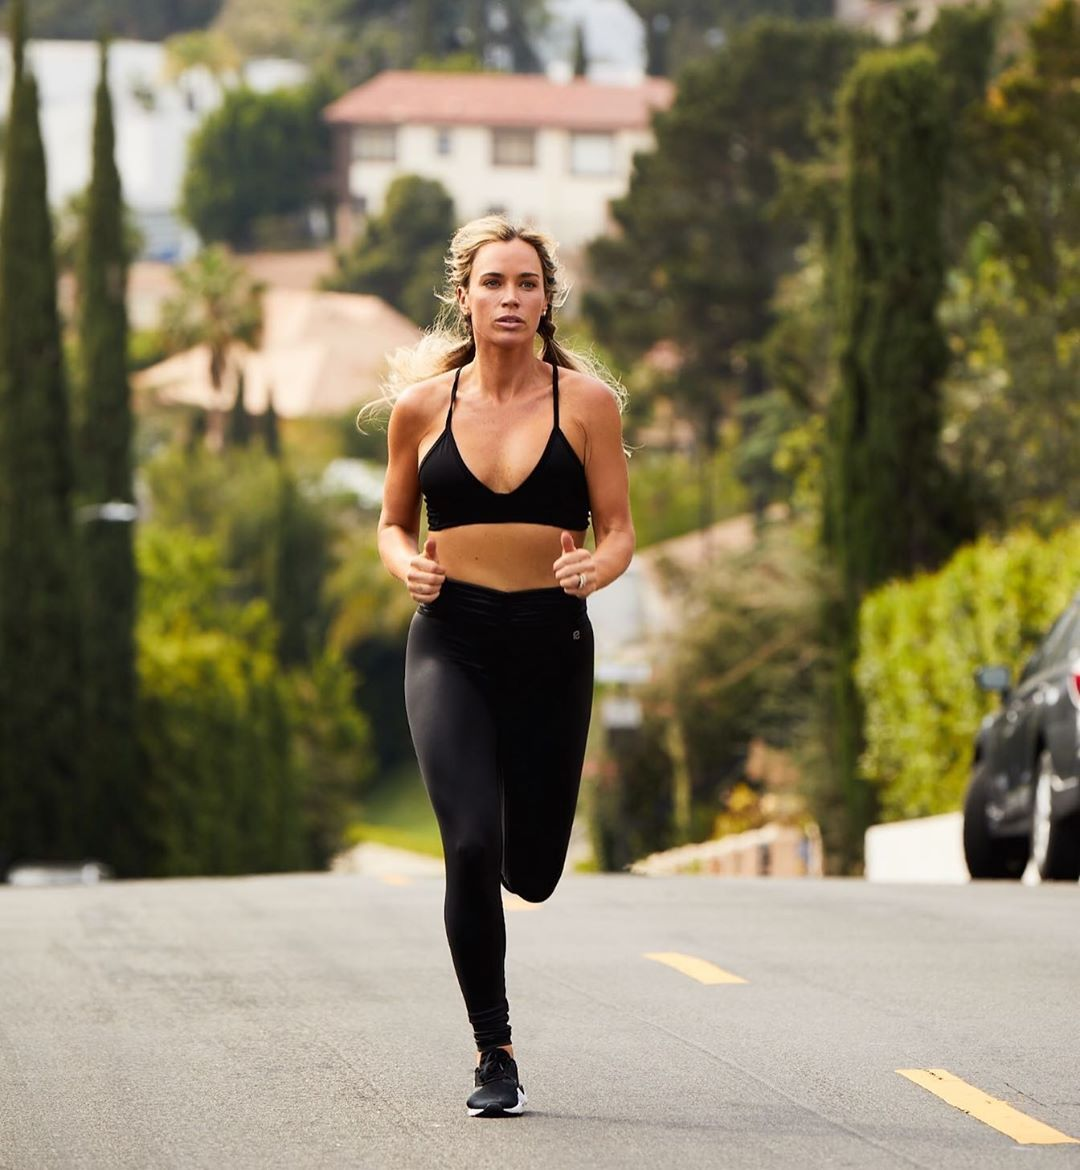 What Is An Accountability Coach? What To Know About 'RHOB' Teddi Mellencamp's Job